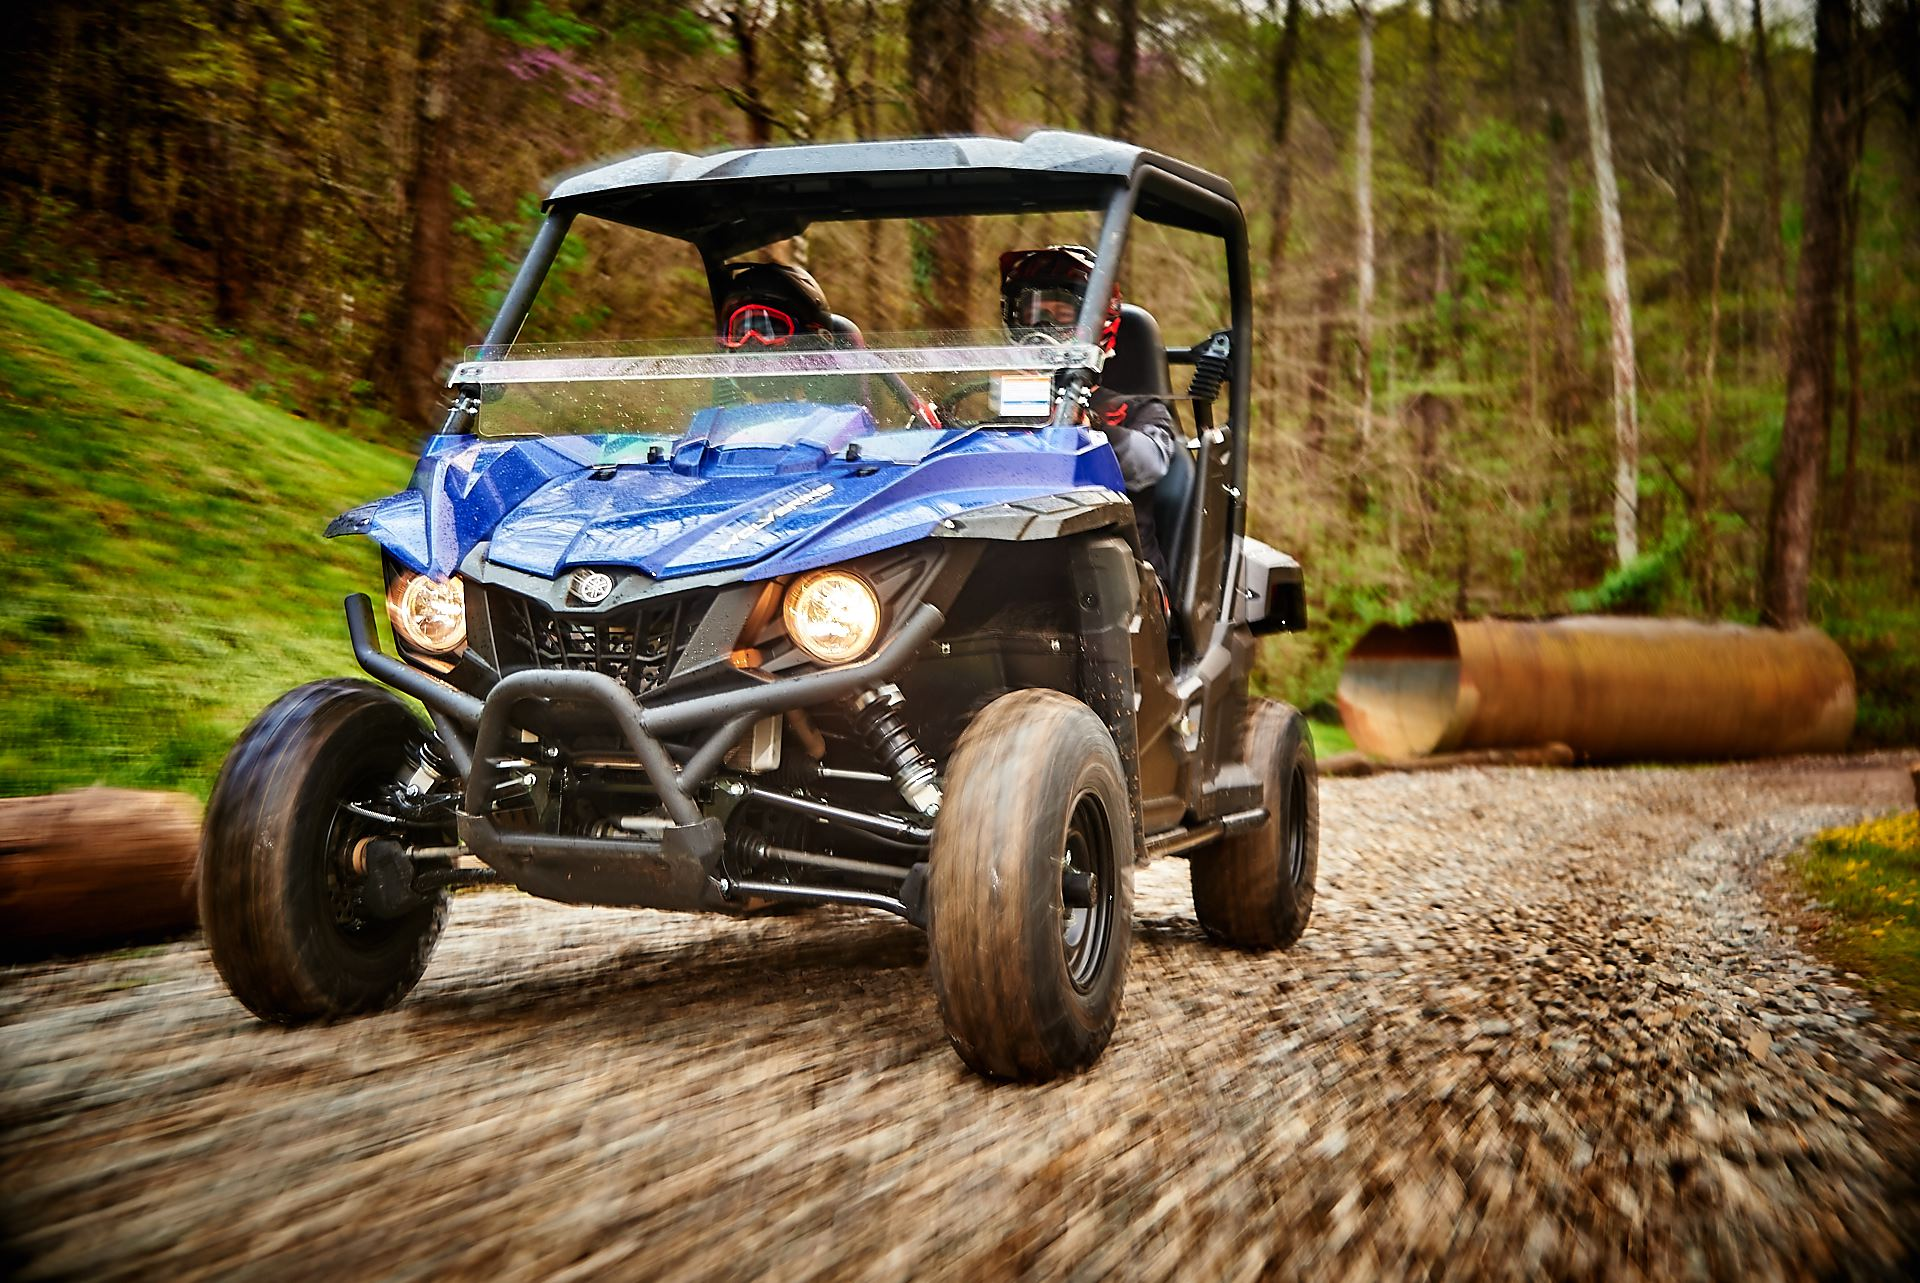 When is new yamaha rhino coming out autos post for Yamaha grizzly 1000cc